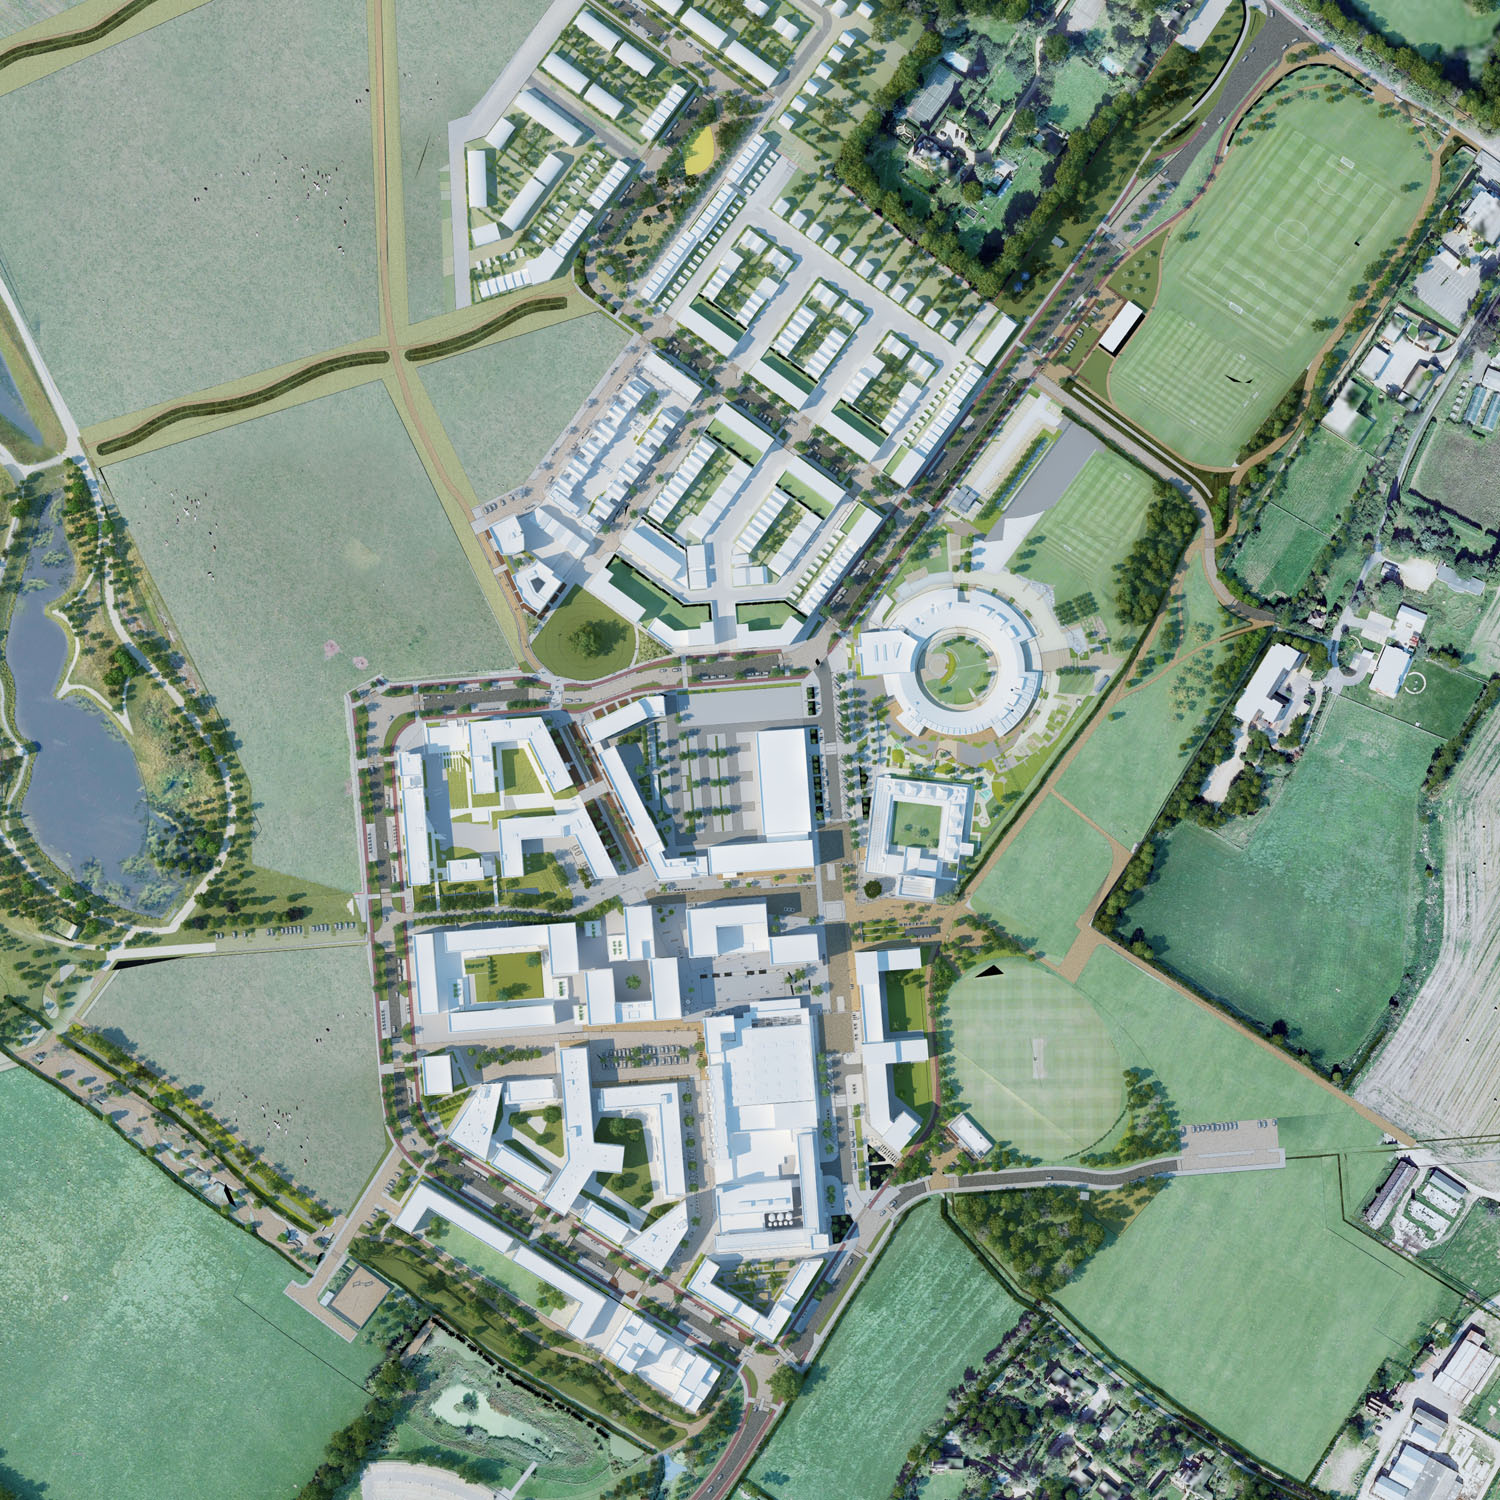 aecom masterplan 3D - University of Cambridge Primary School by Marks Barfield Architects